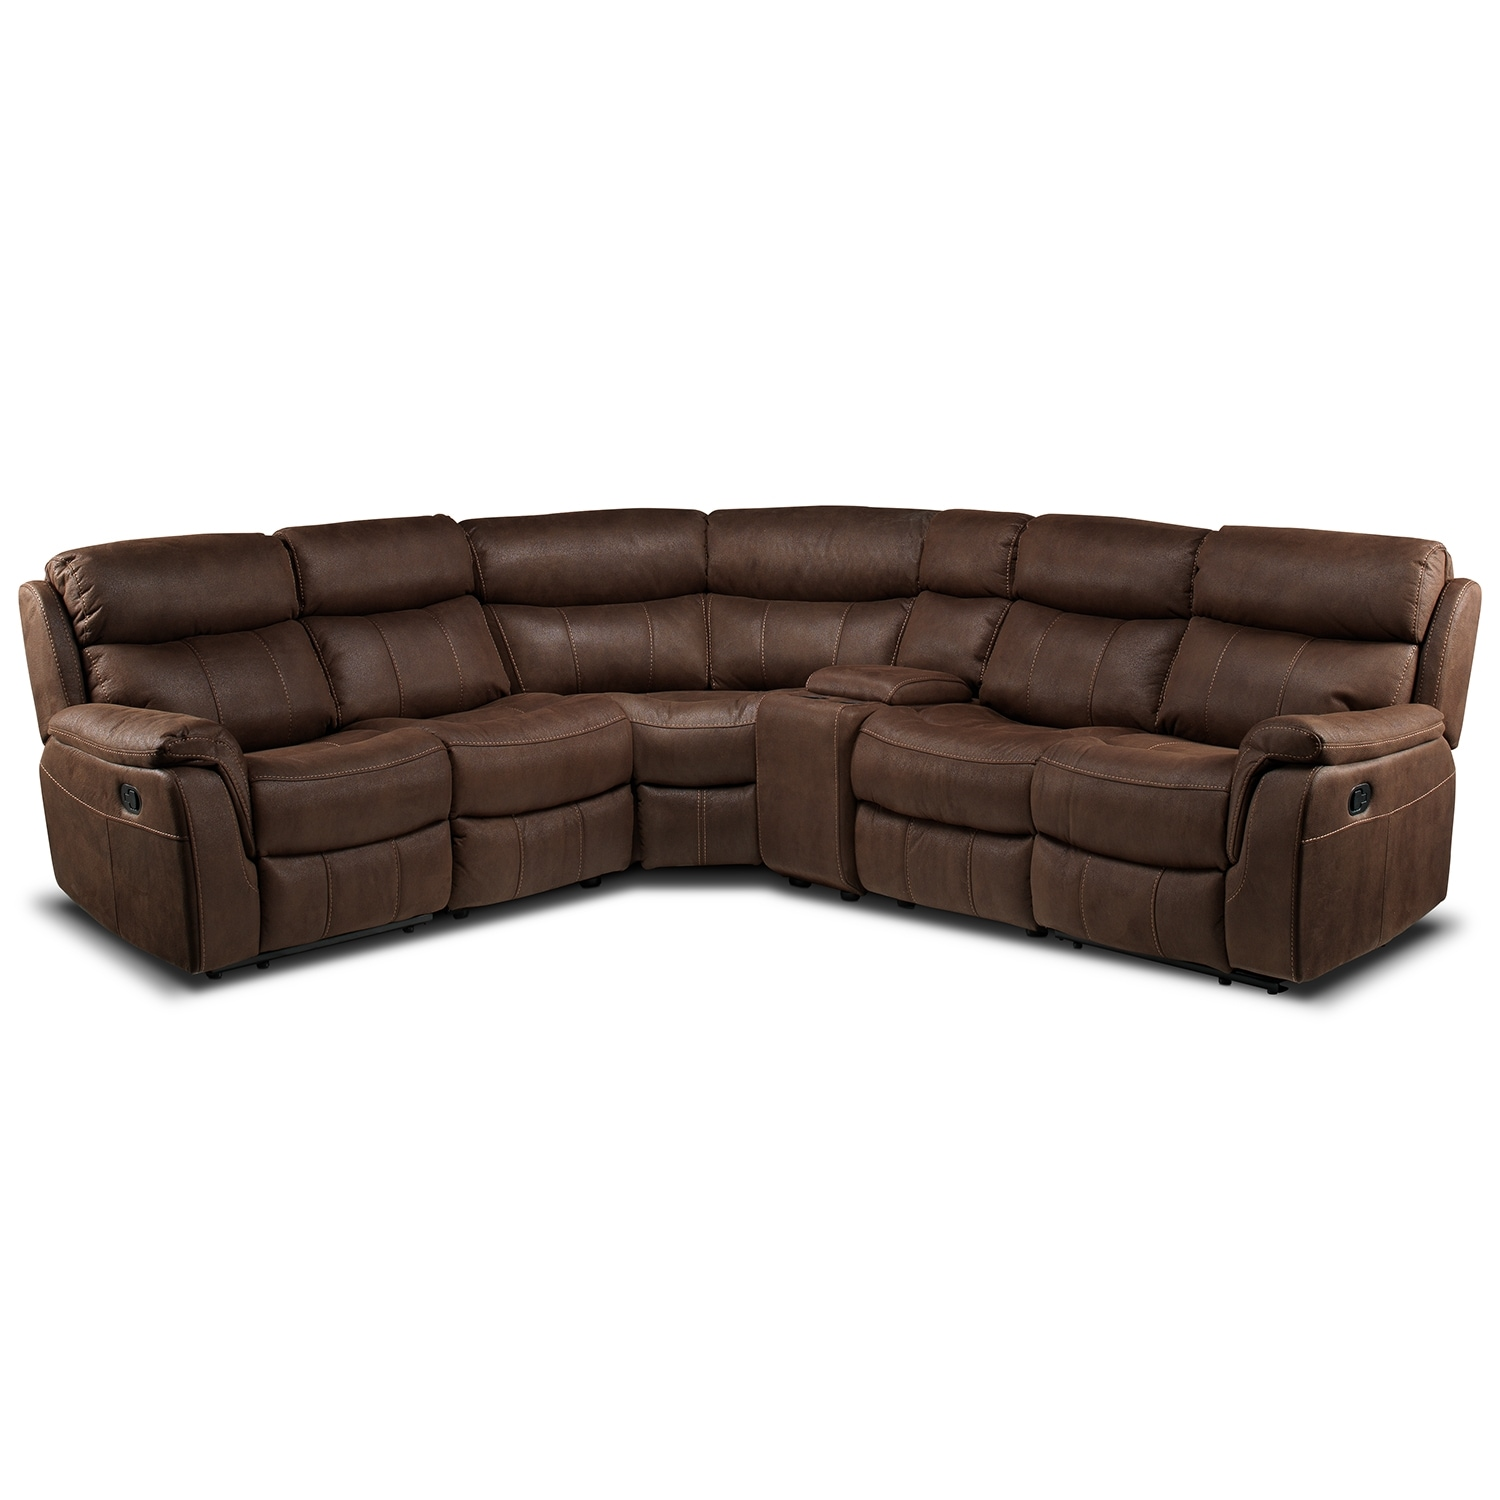 Vaquero 6 pc sectional for 6 pc sectional living room